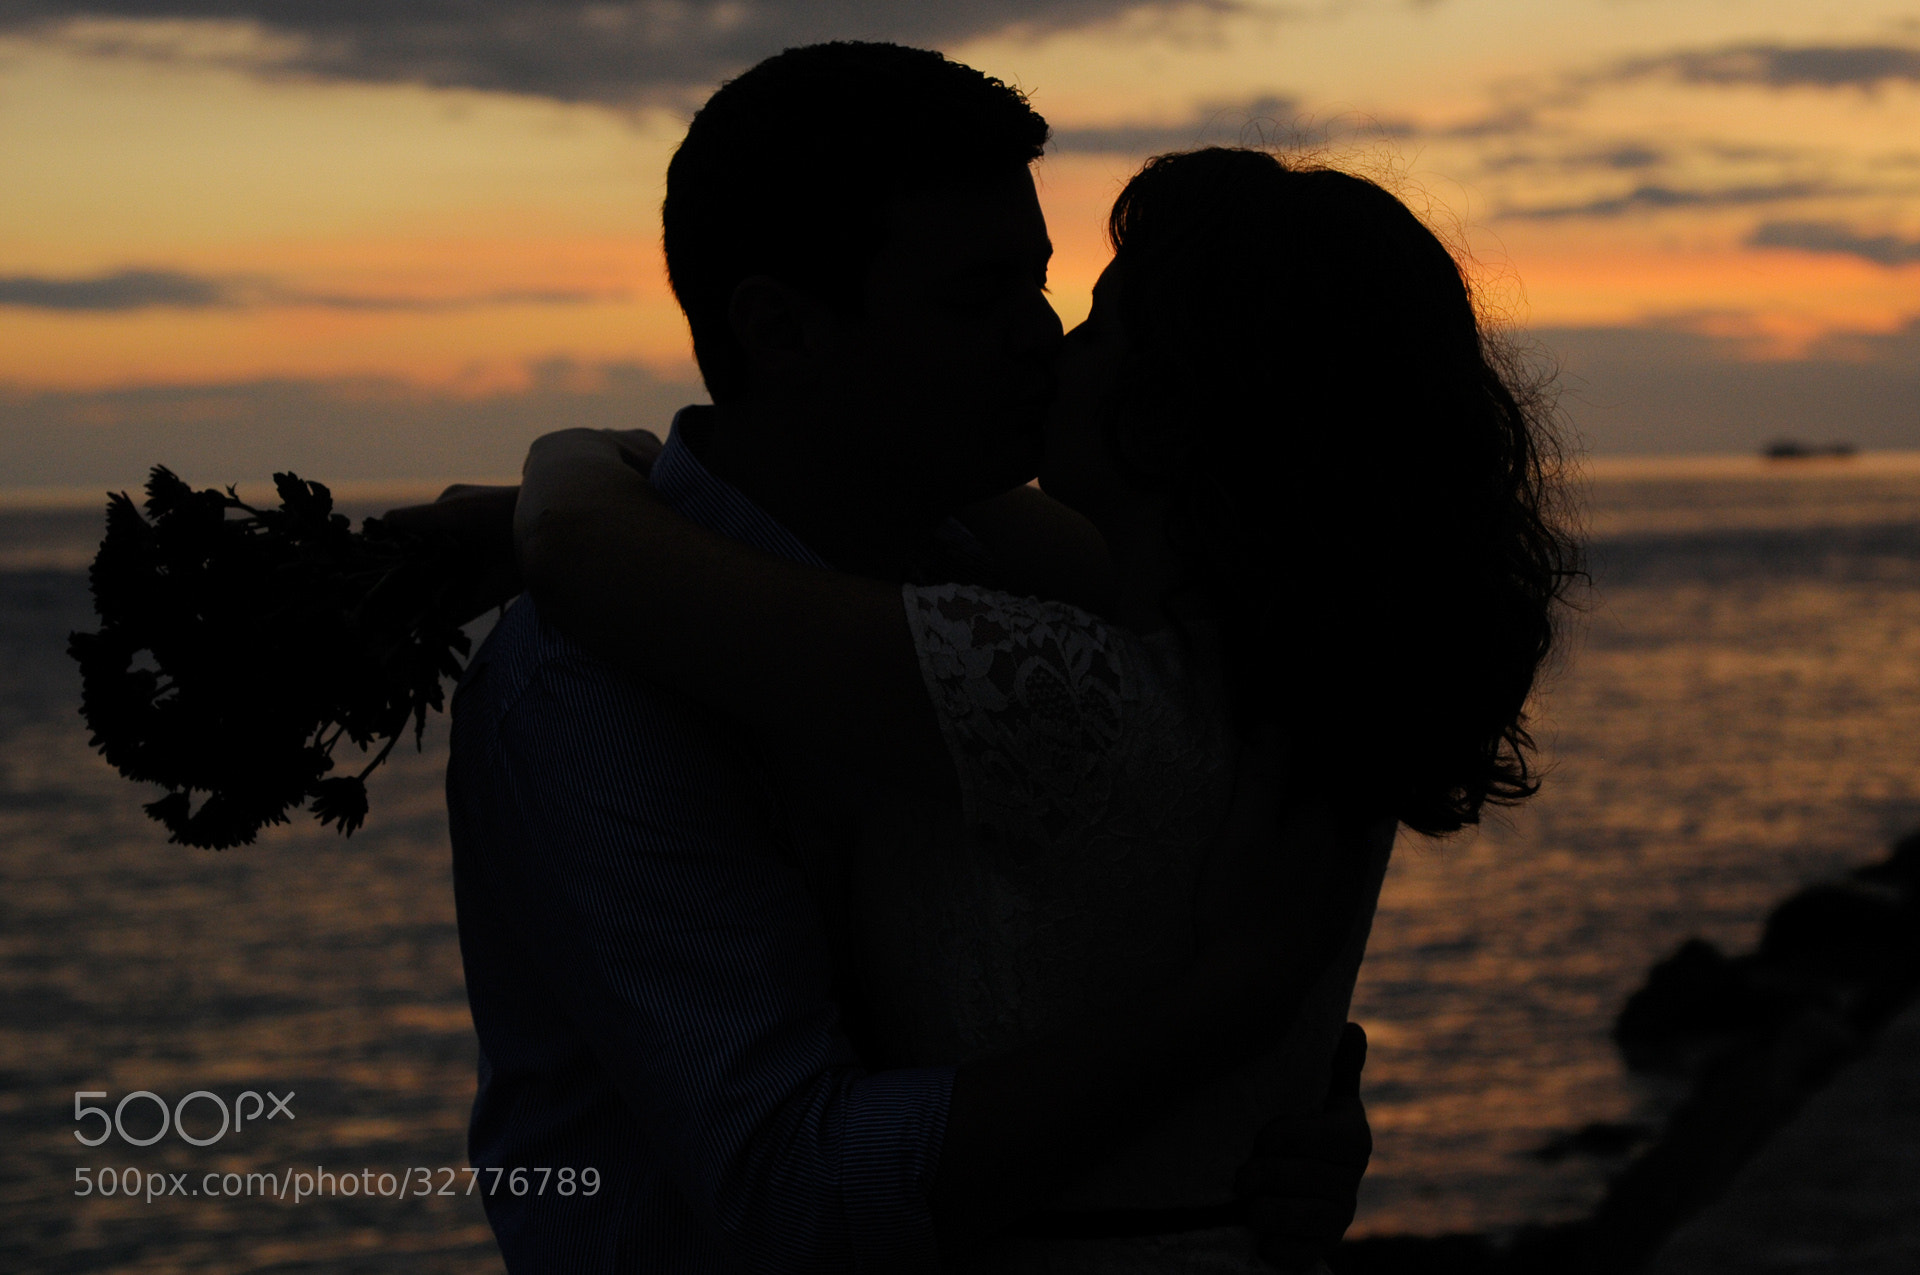 Photograph sunset engagement portrait by Jan Freire on 500px